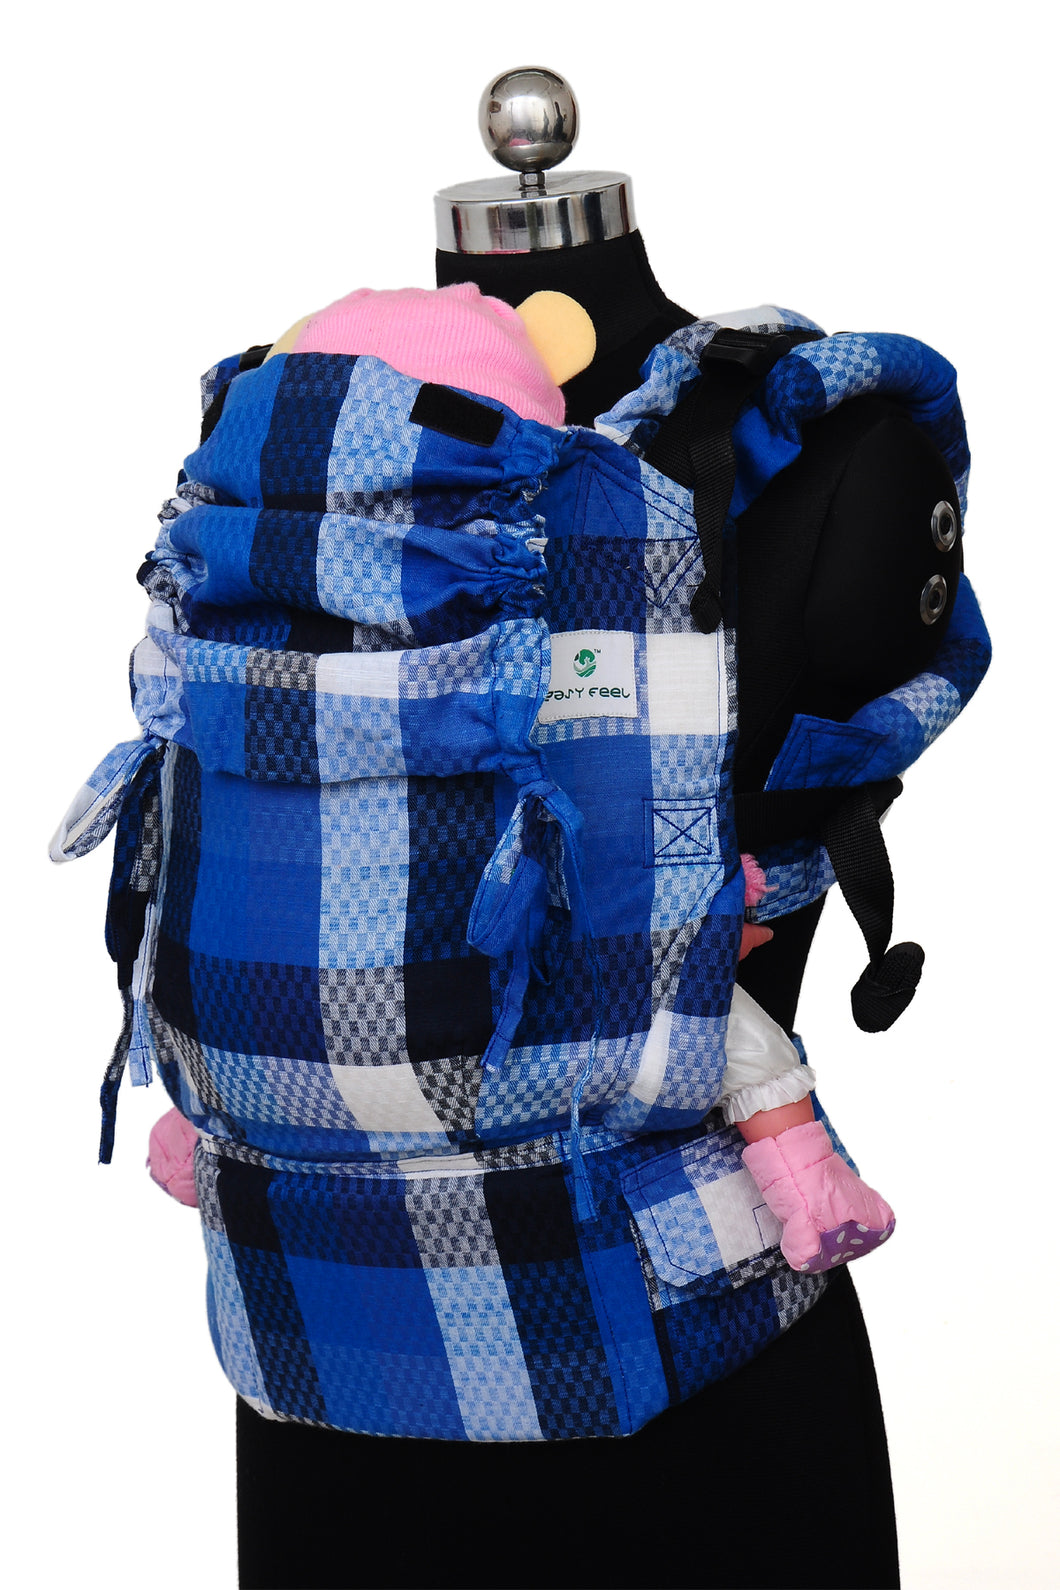 Toddler Soft Structured Carrier - Pristine